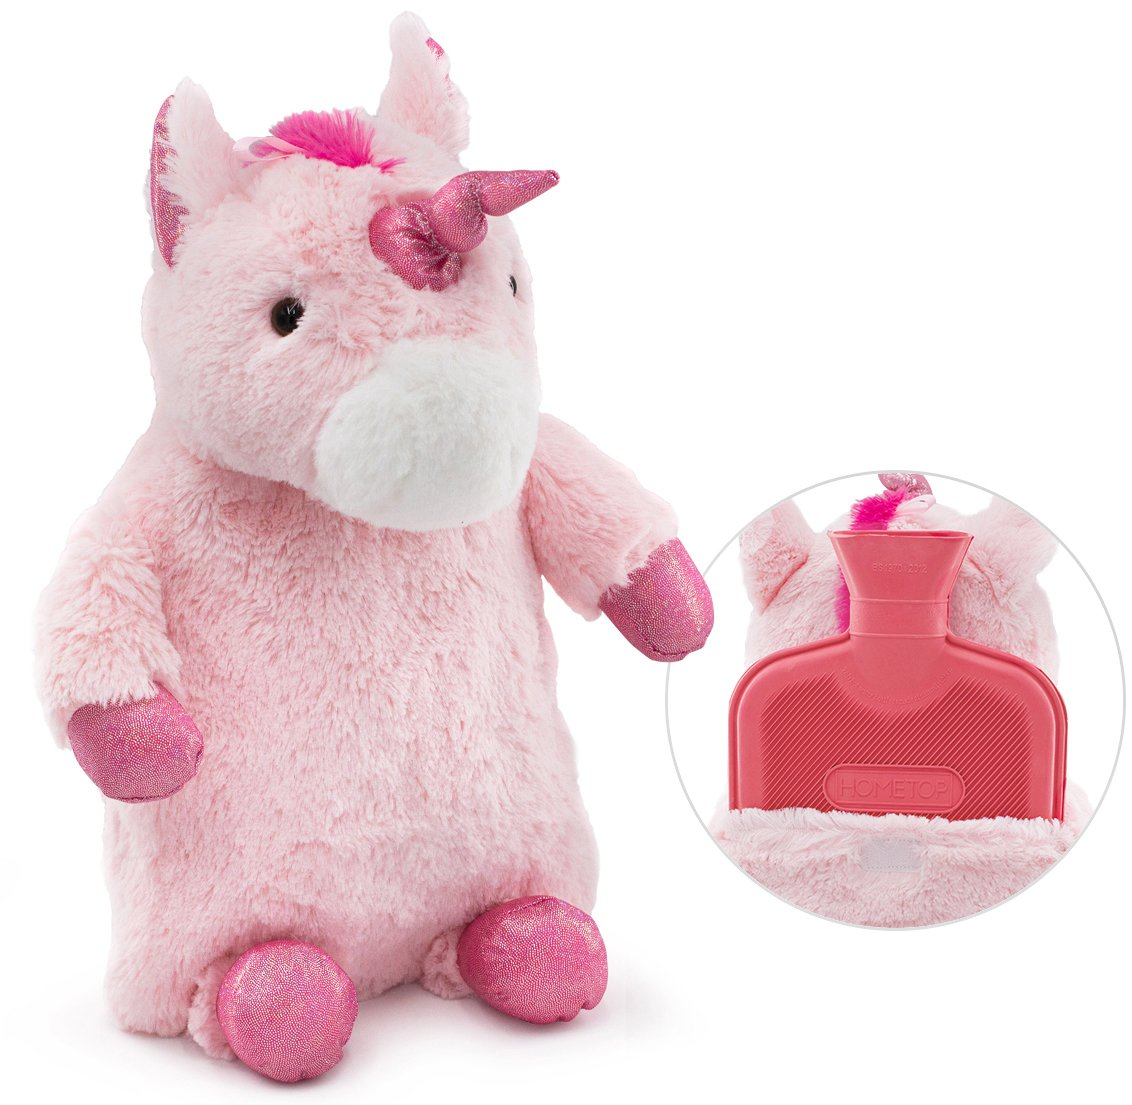 HomeTop Premium Classic Rubber Hot Water Bottle with Cute Unicorn Cover (2L, Pink)